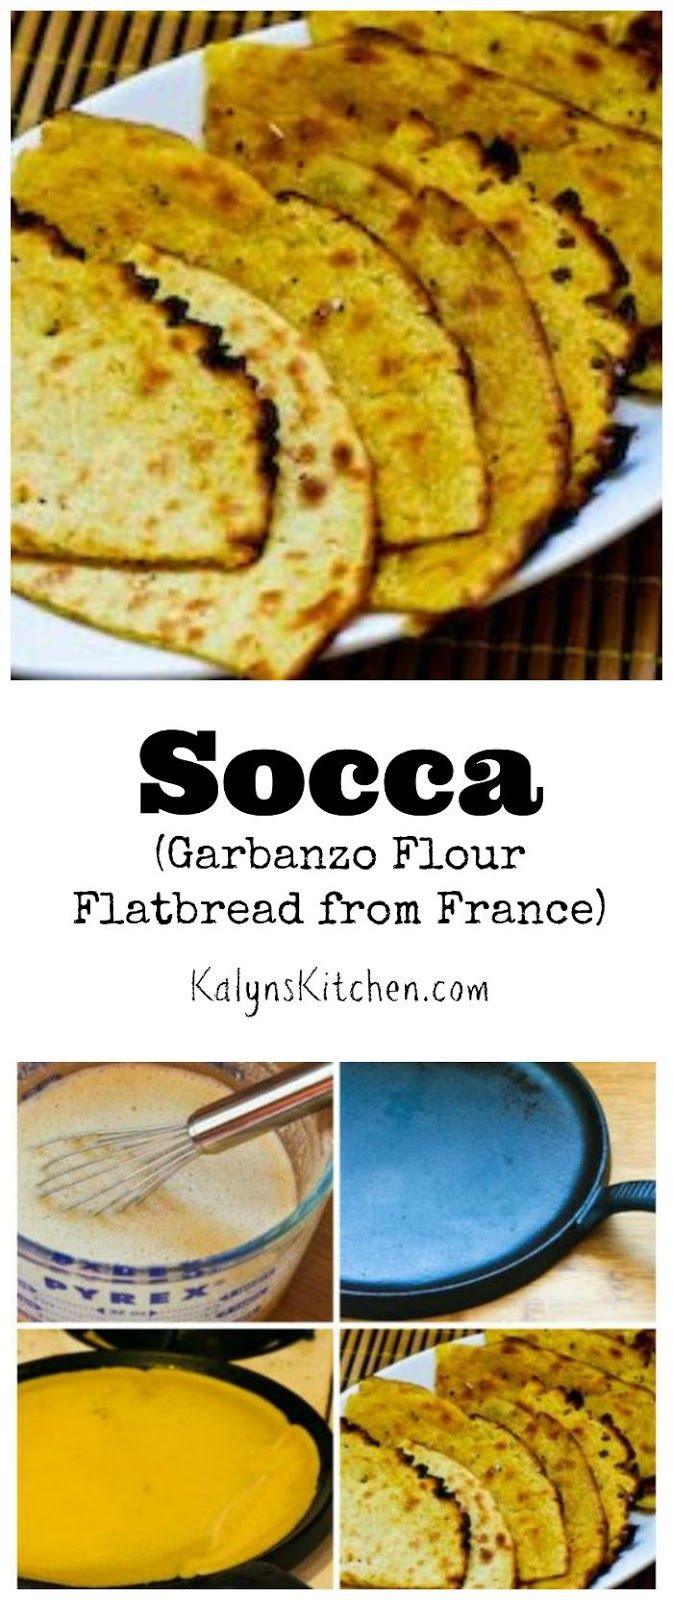 Socca Recipe - Garbanzo or Chickpea Flatbread Pancake from France (Gluten-Free, Vegan) | Kalyn's Kitchen®